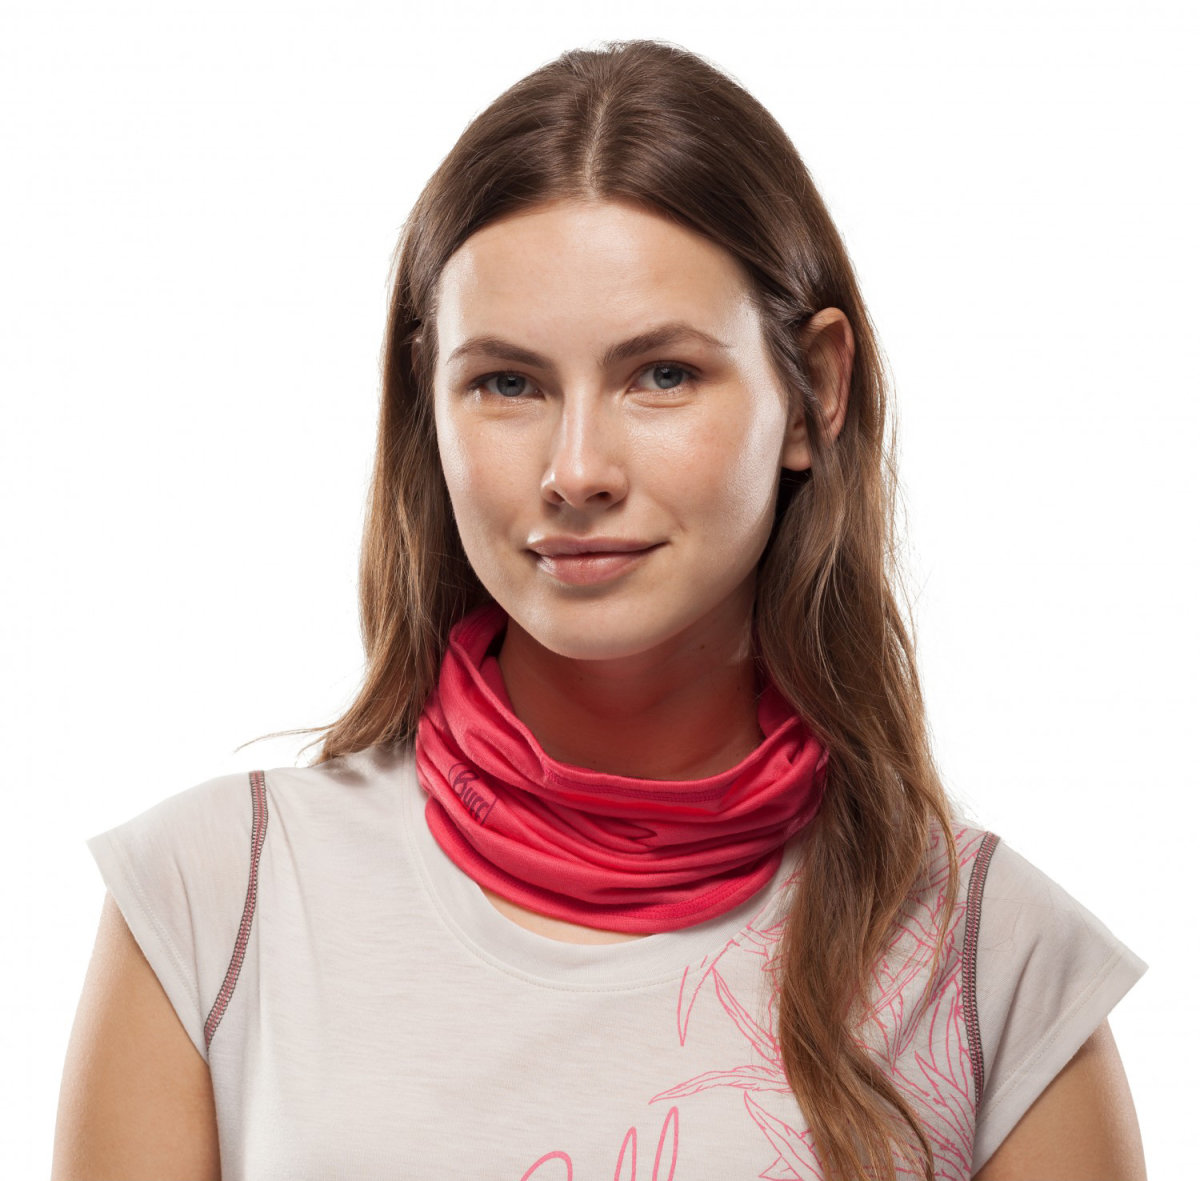 Бандана BUFF 3/4 LIGHTWEIGHT MERINO WOOL coral stripes 1 BUFF 3/4 LIGHTWEIGHT MERINO WOOL solid coral BU 117006.506.10.00